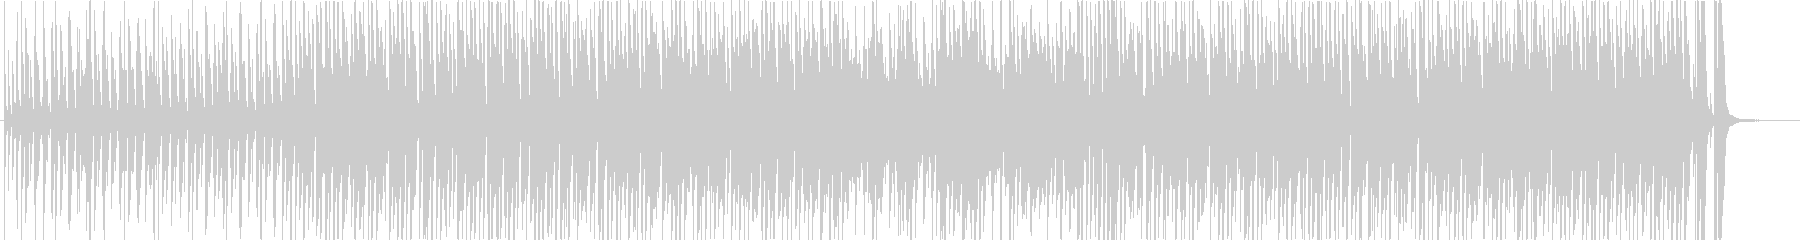 Summertime tropical country resort, no steel bread song's unreproduced waveform